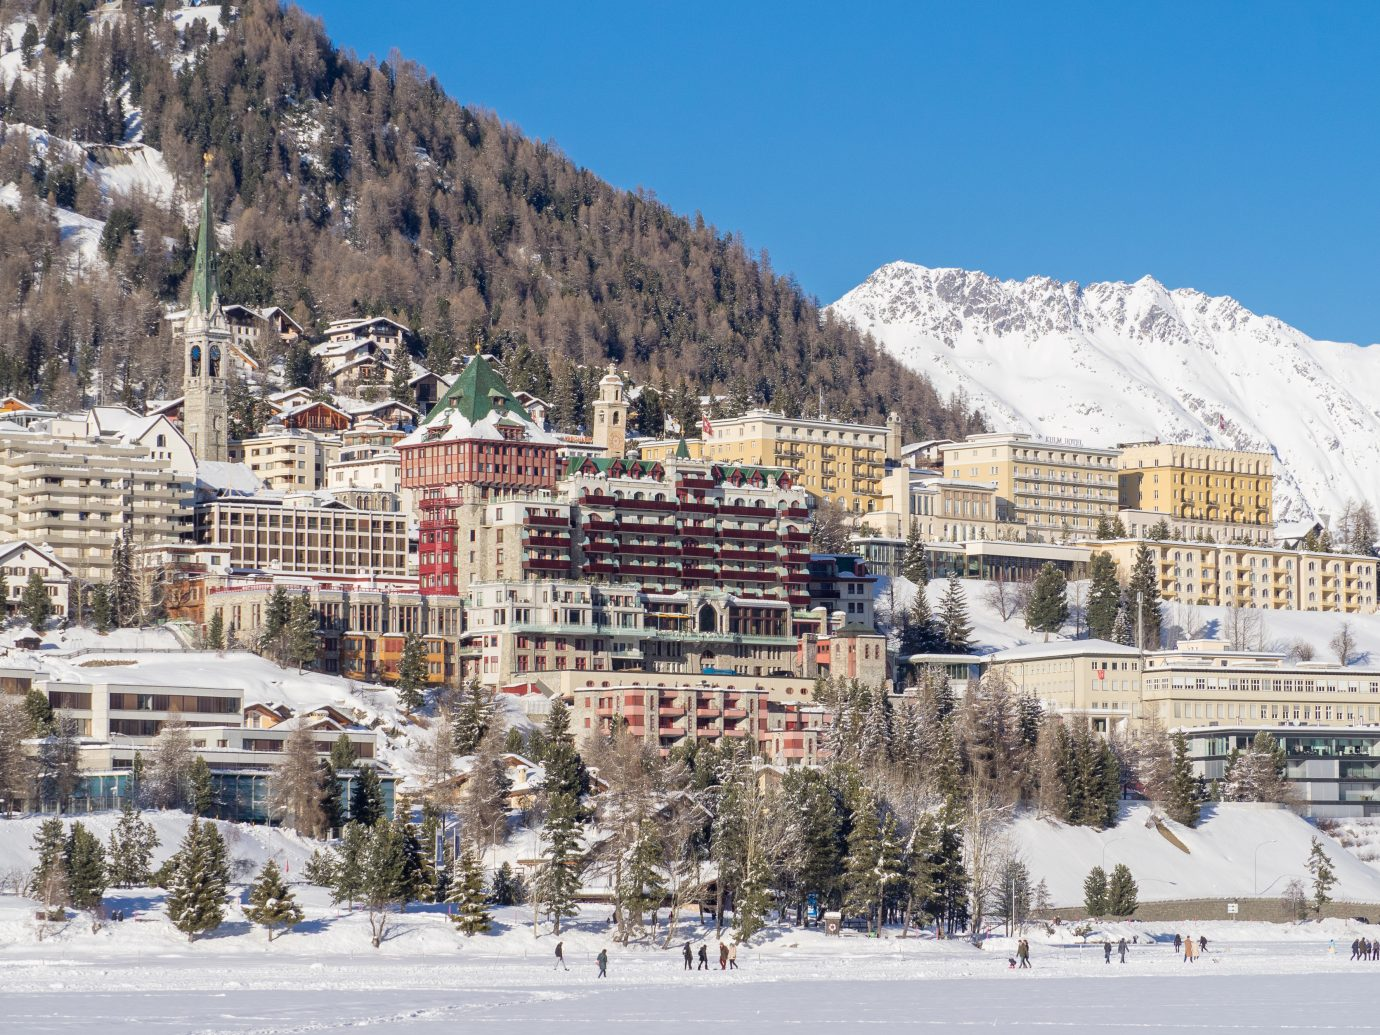 Panorama of Sankt Moritz town in Engadine, Swiss Alps, during winter